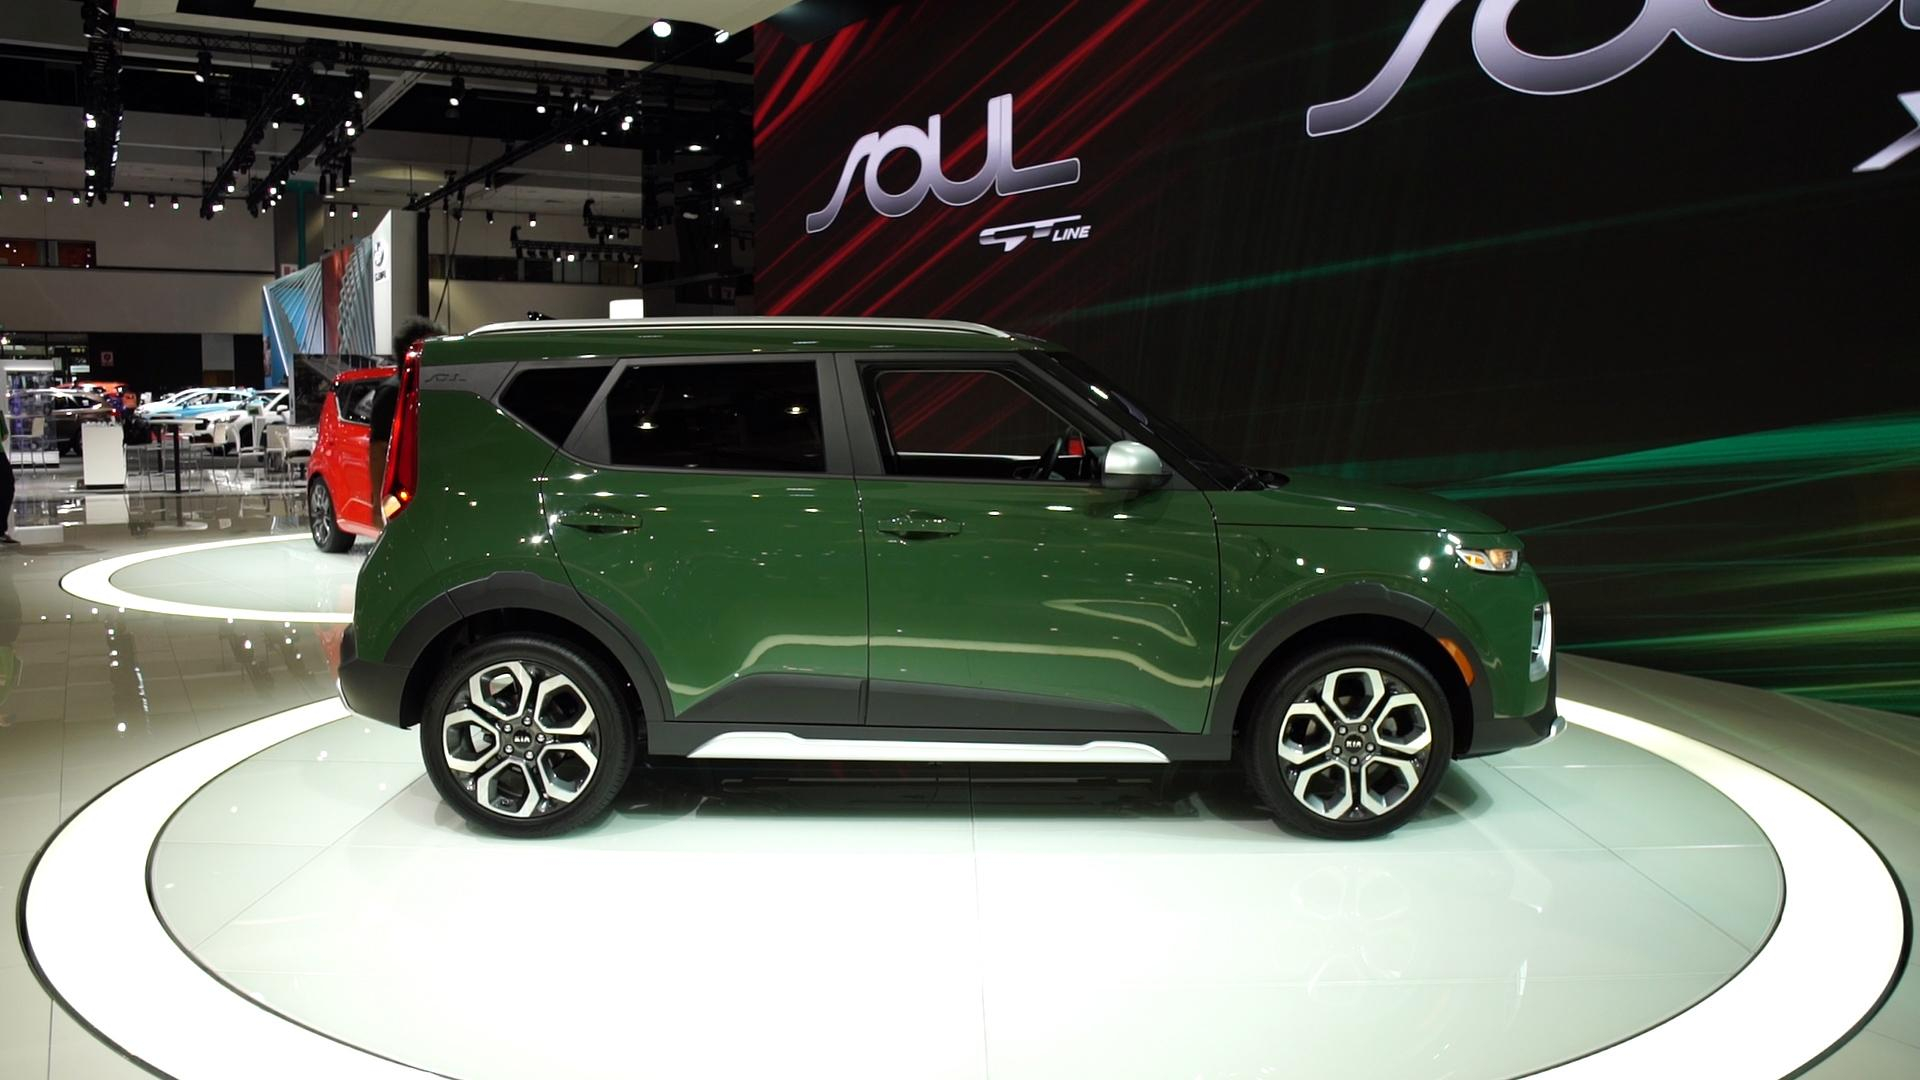 Kia Soul To Debut On India Roads Soon? - Auto Freak - 2022 Kia Soul Colors Release Date, Color Options, Change